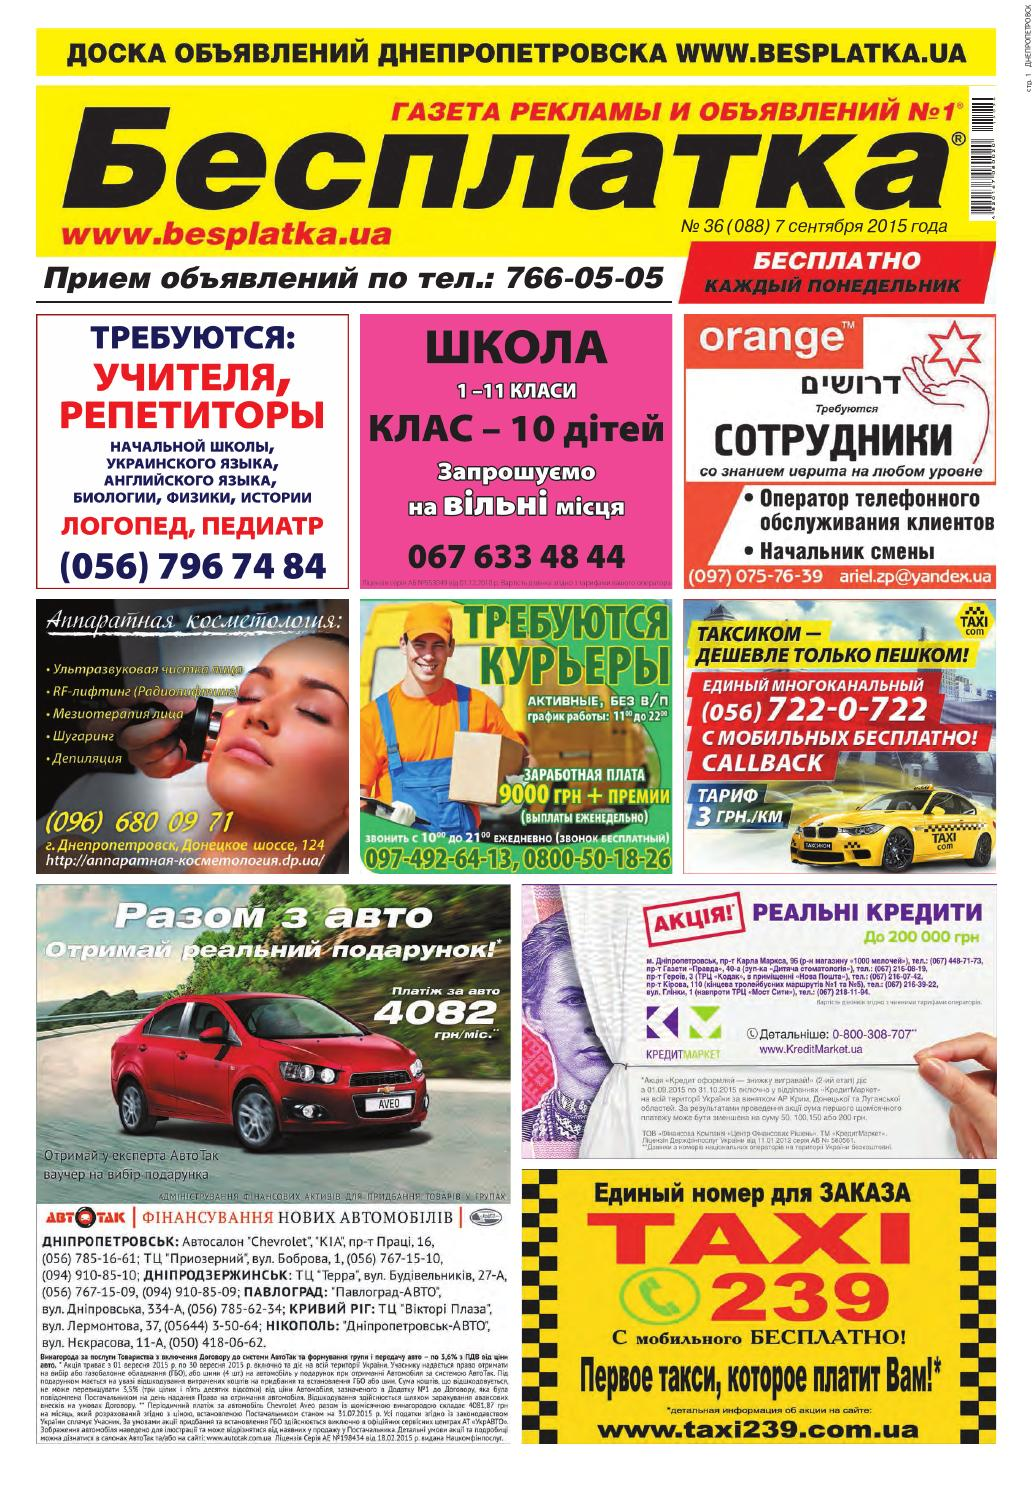 bd396d182f53 Besplatka  36 Днепропетровск by besplatka ukraine - issuu